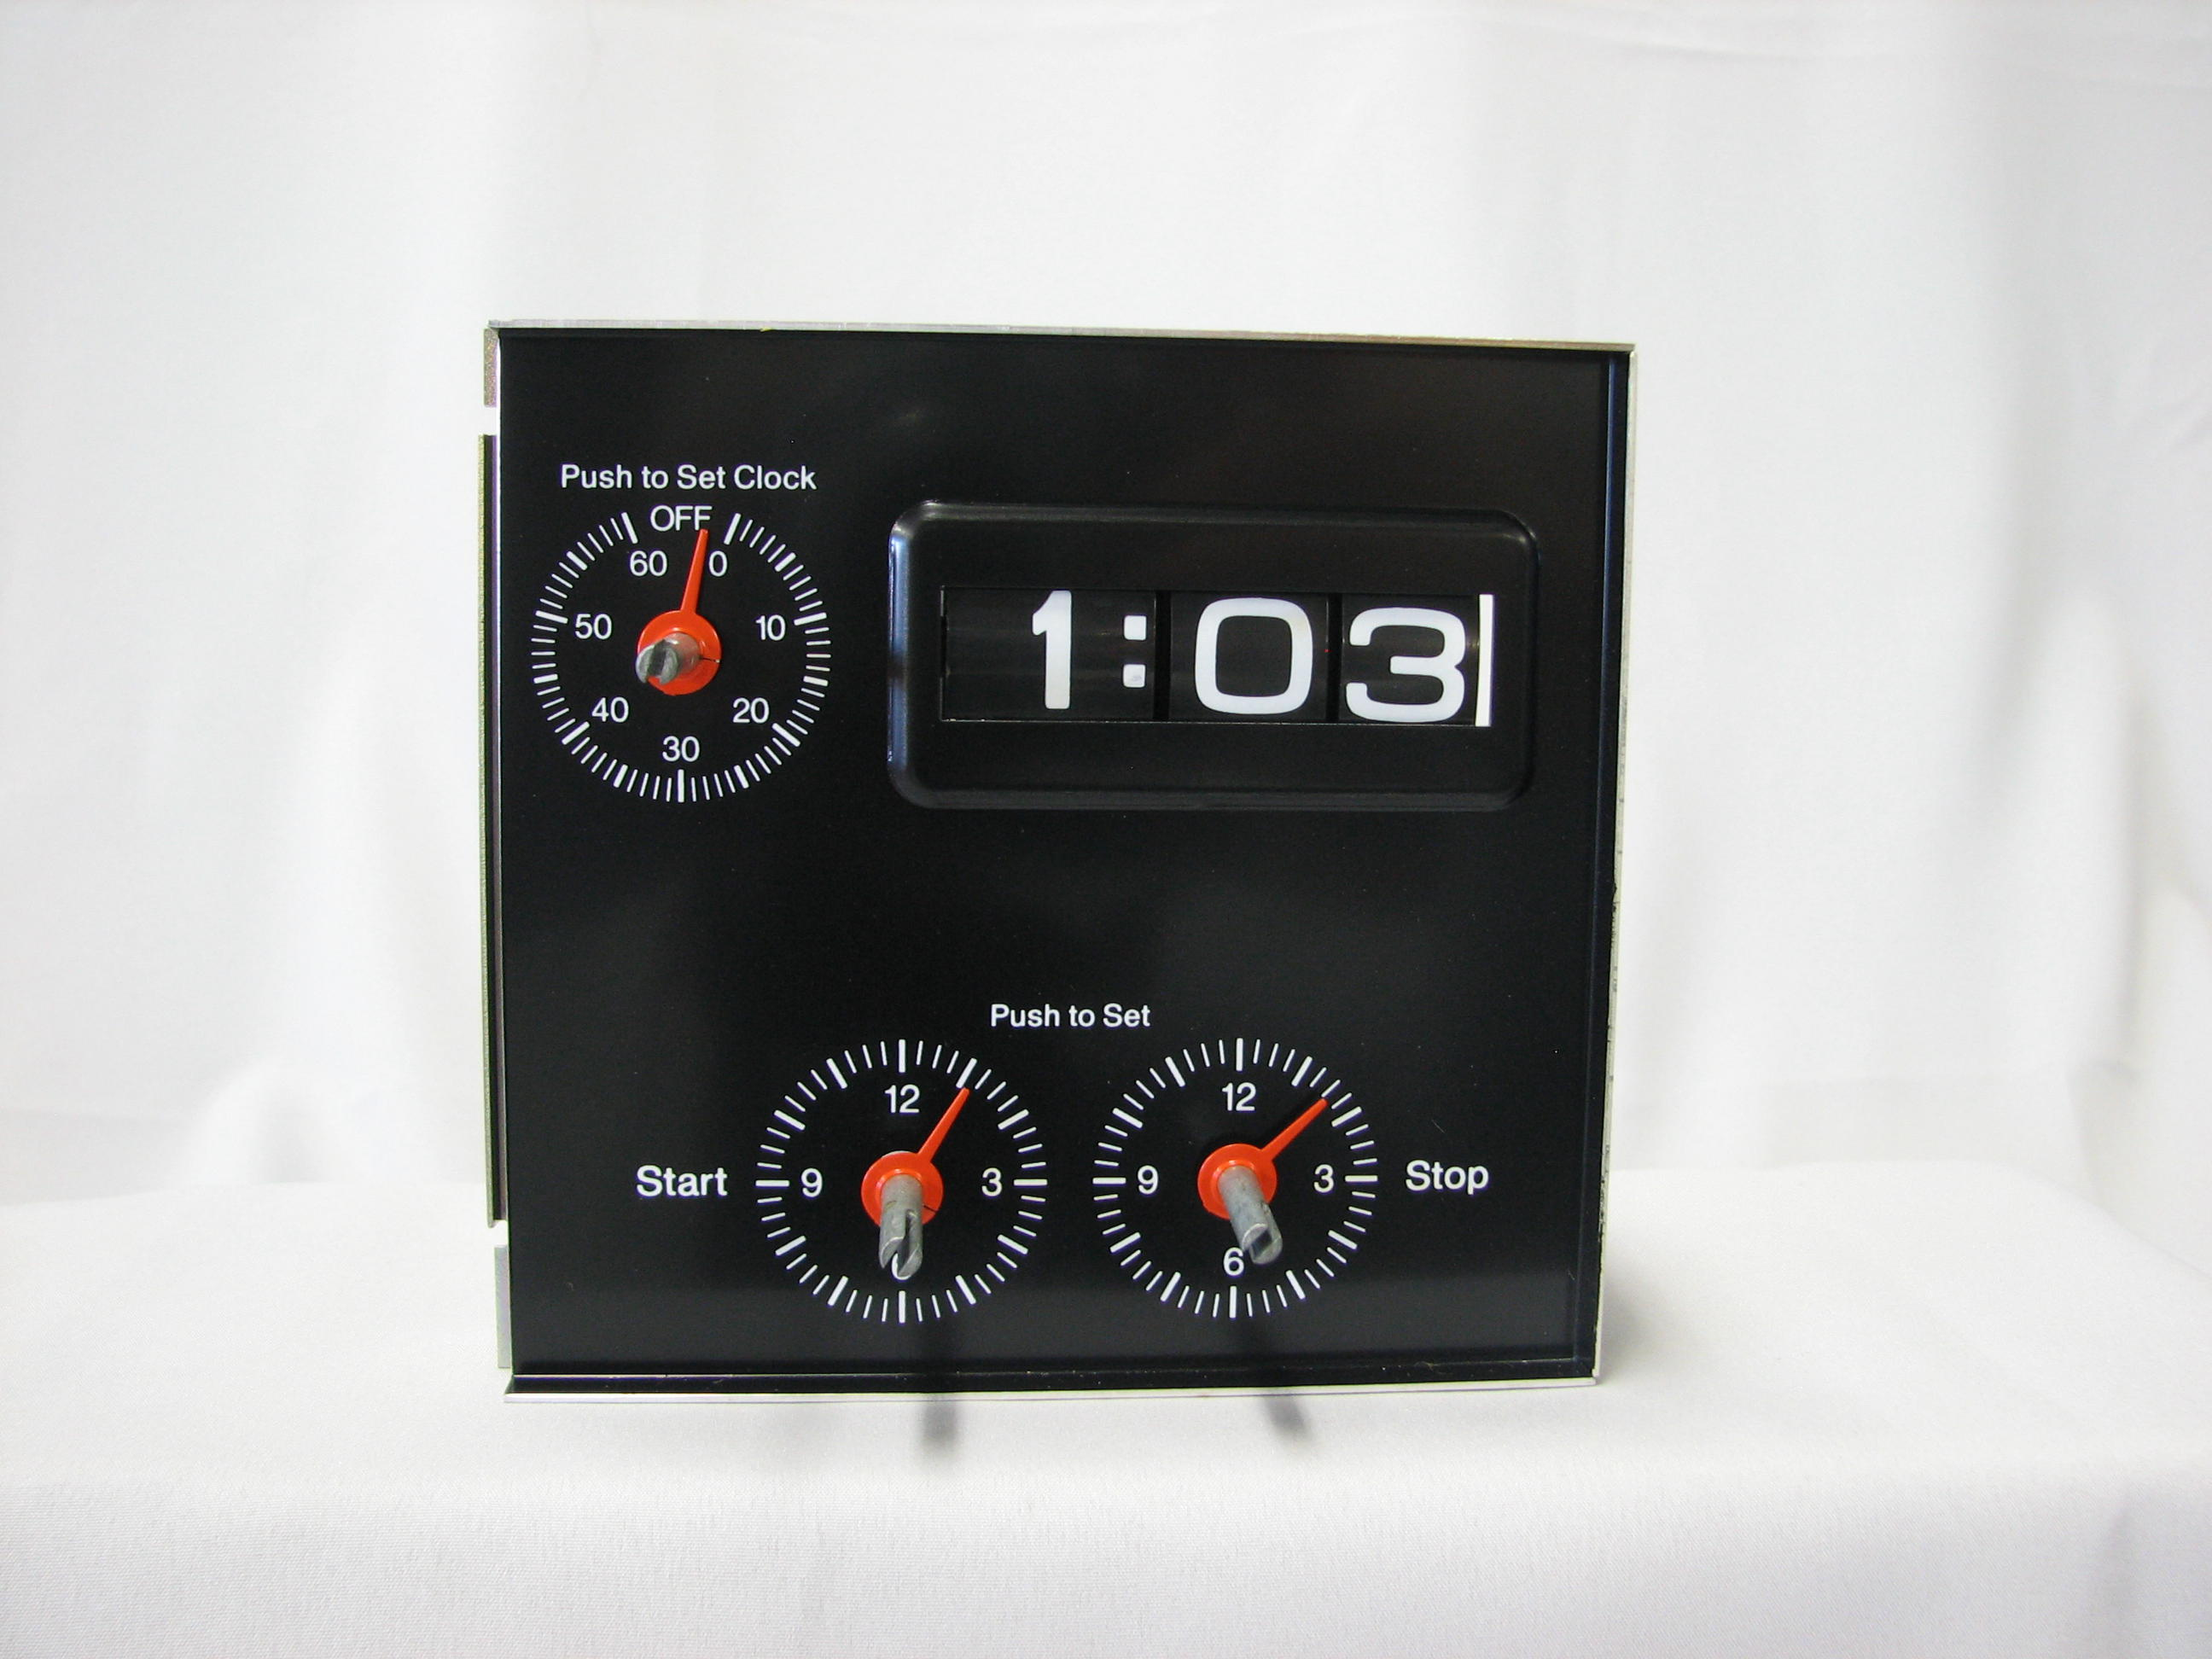 Cpeb30s8cc2 Wall Oven Timer Stove Clocks And Appliance Timers